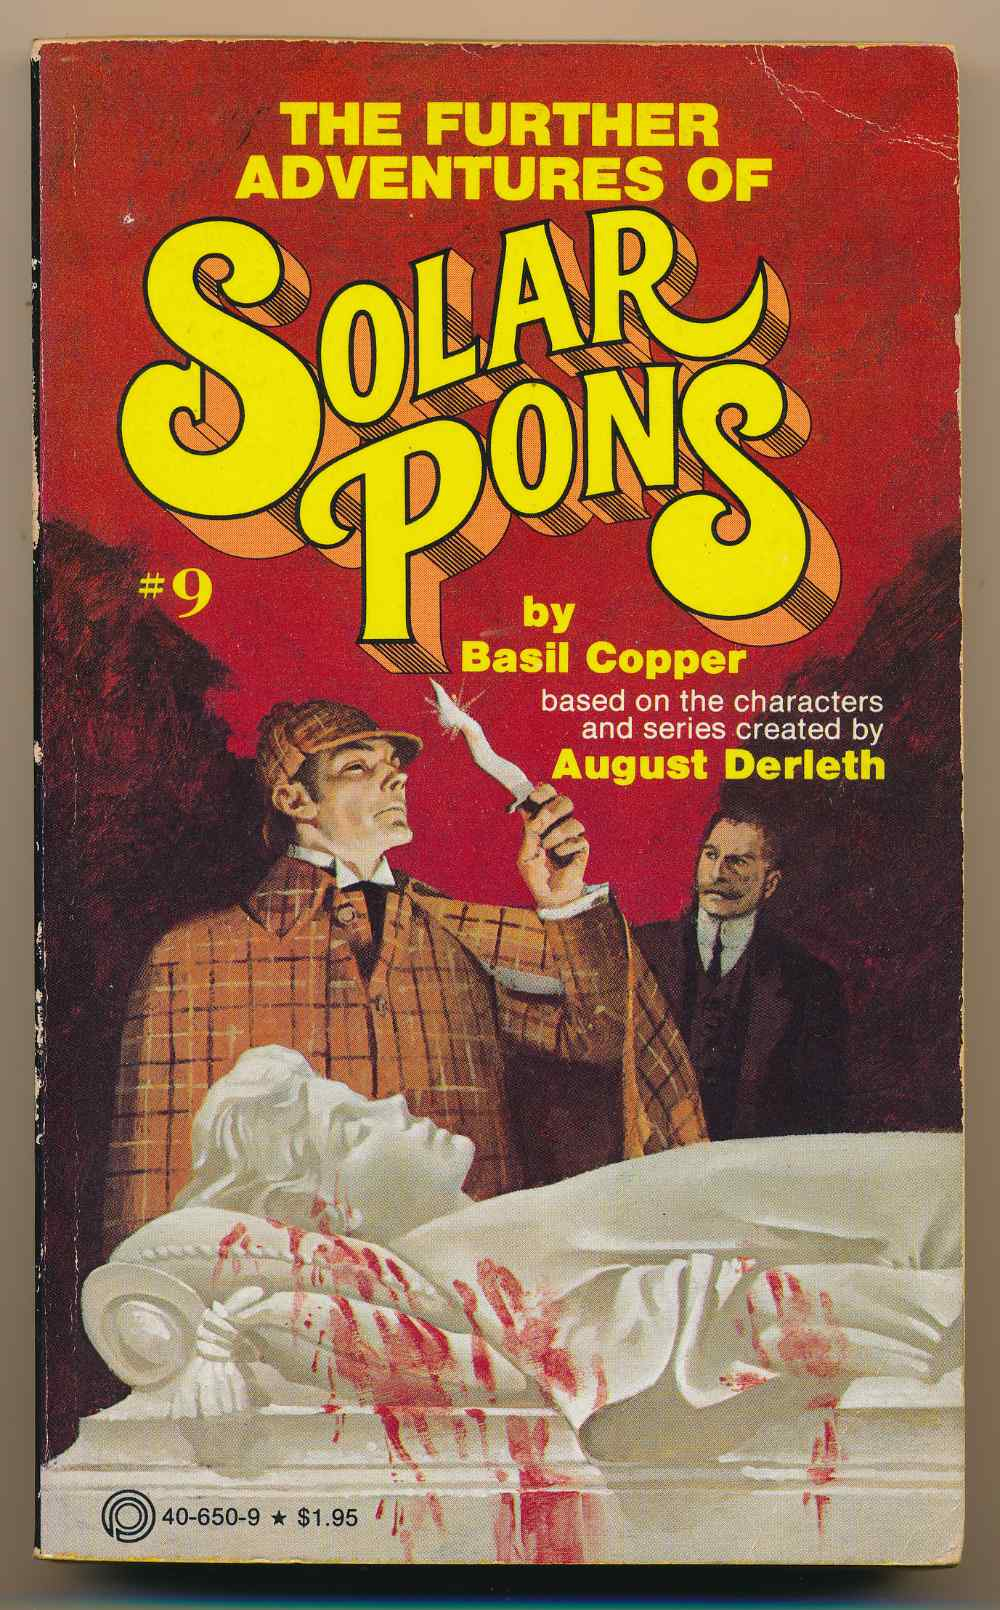 The further adventures of Solar Pons